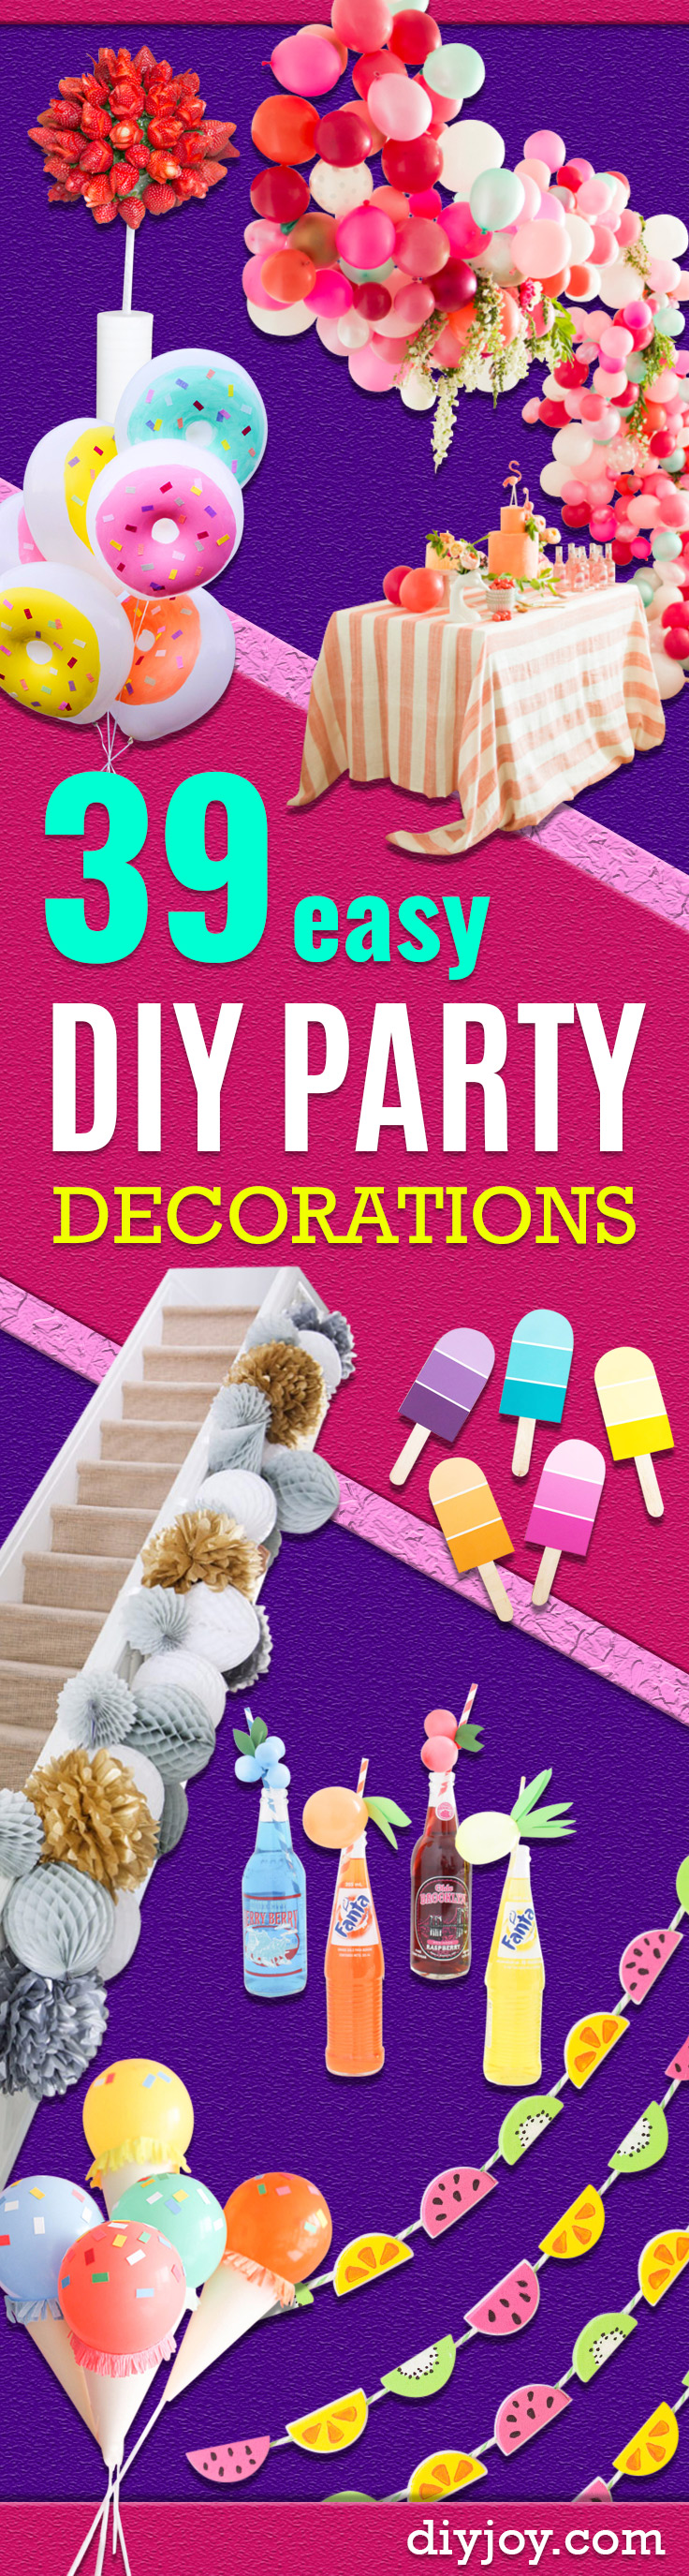 Diy Party 39 Easy Diy Party Decorations